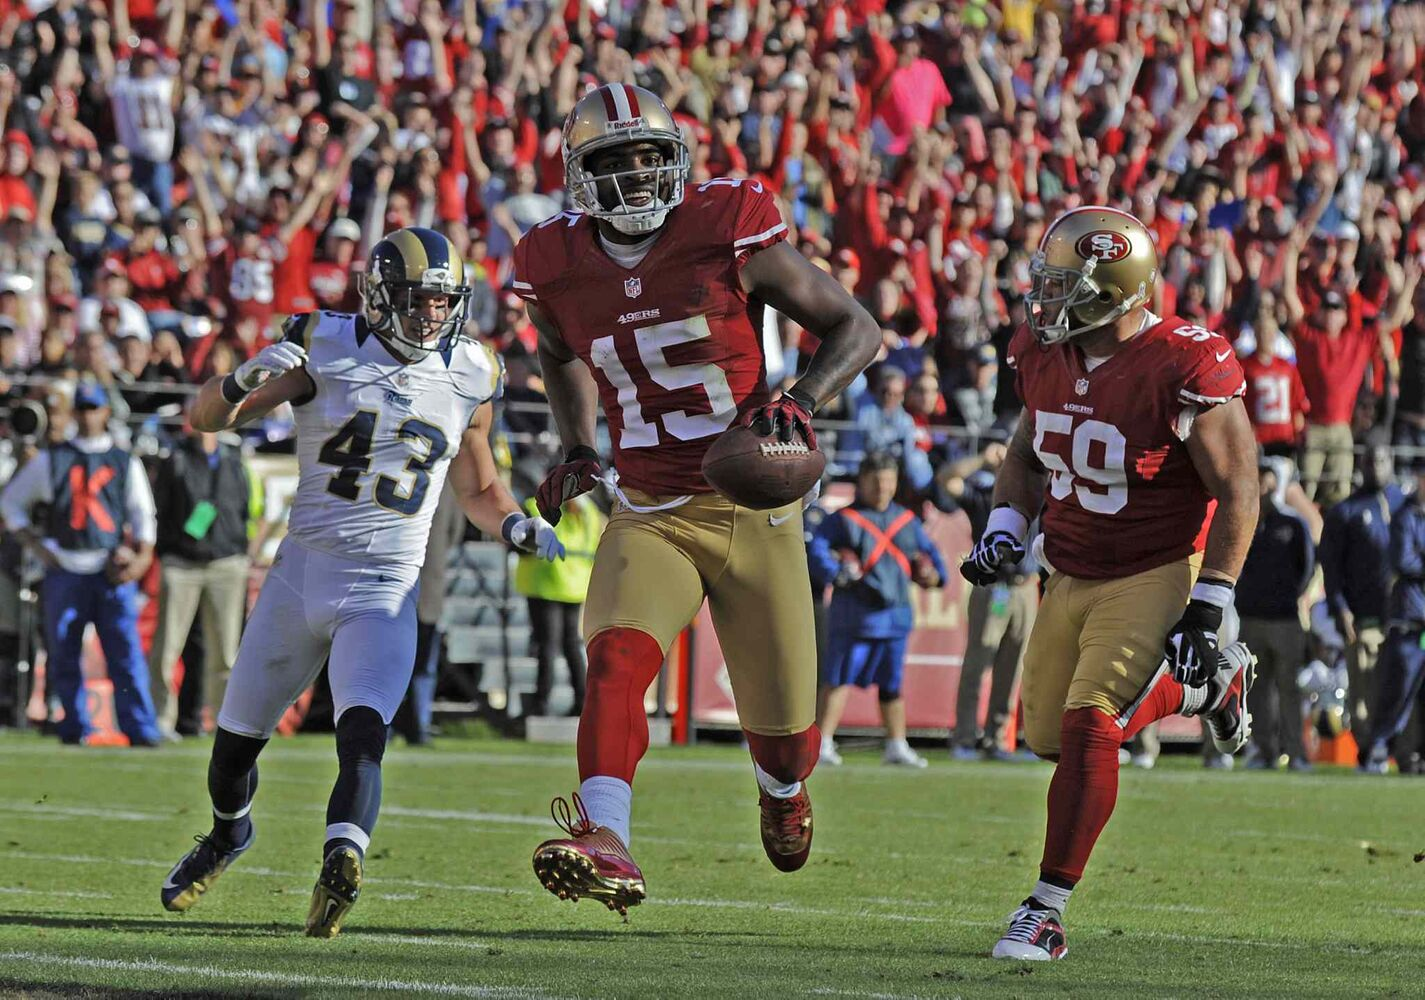 Michael Crabtree (15) of the San Francisco 49ers smiles as he runs in for a touchdown against the St. Louis Rams in the second quarter of their game at Candlestick Park in November 2012. (Jose Carlos Fajardo / Contra Costa Times / MCT files)